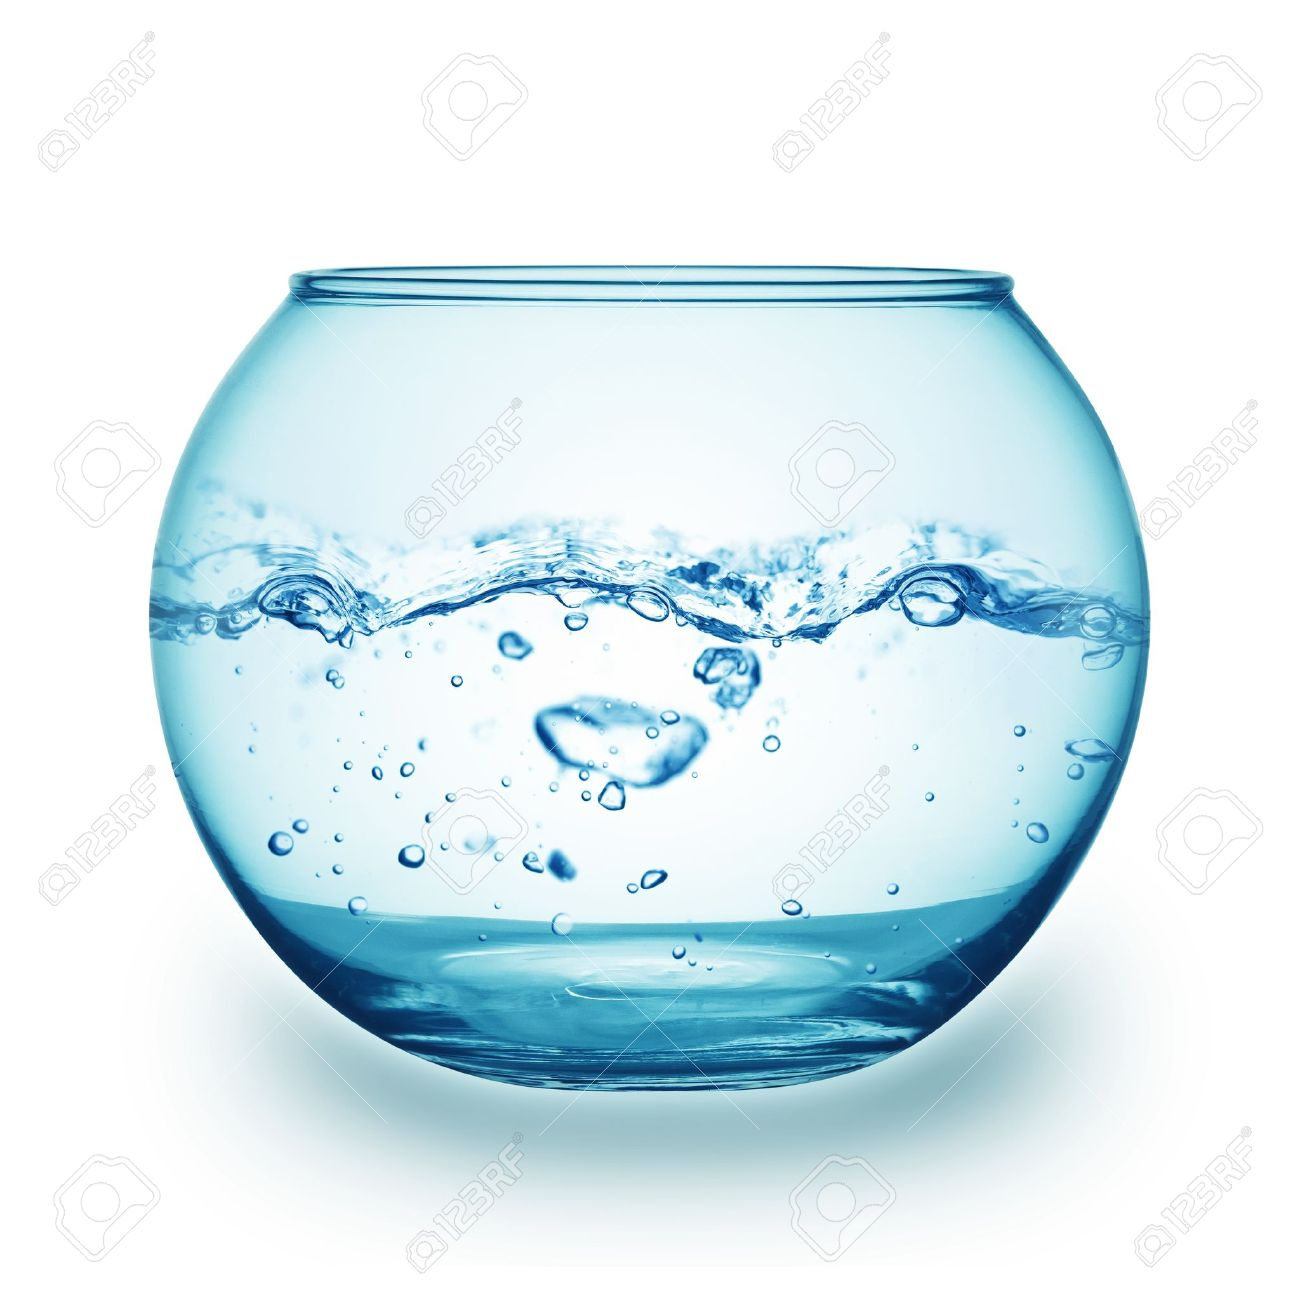 close up view of a fish bowl on white background Stock Photo - 13306975